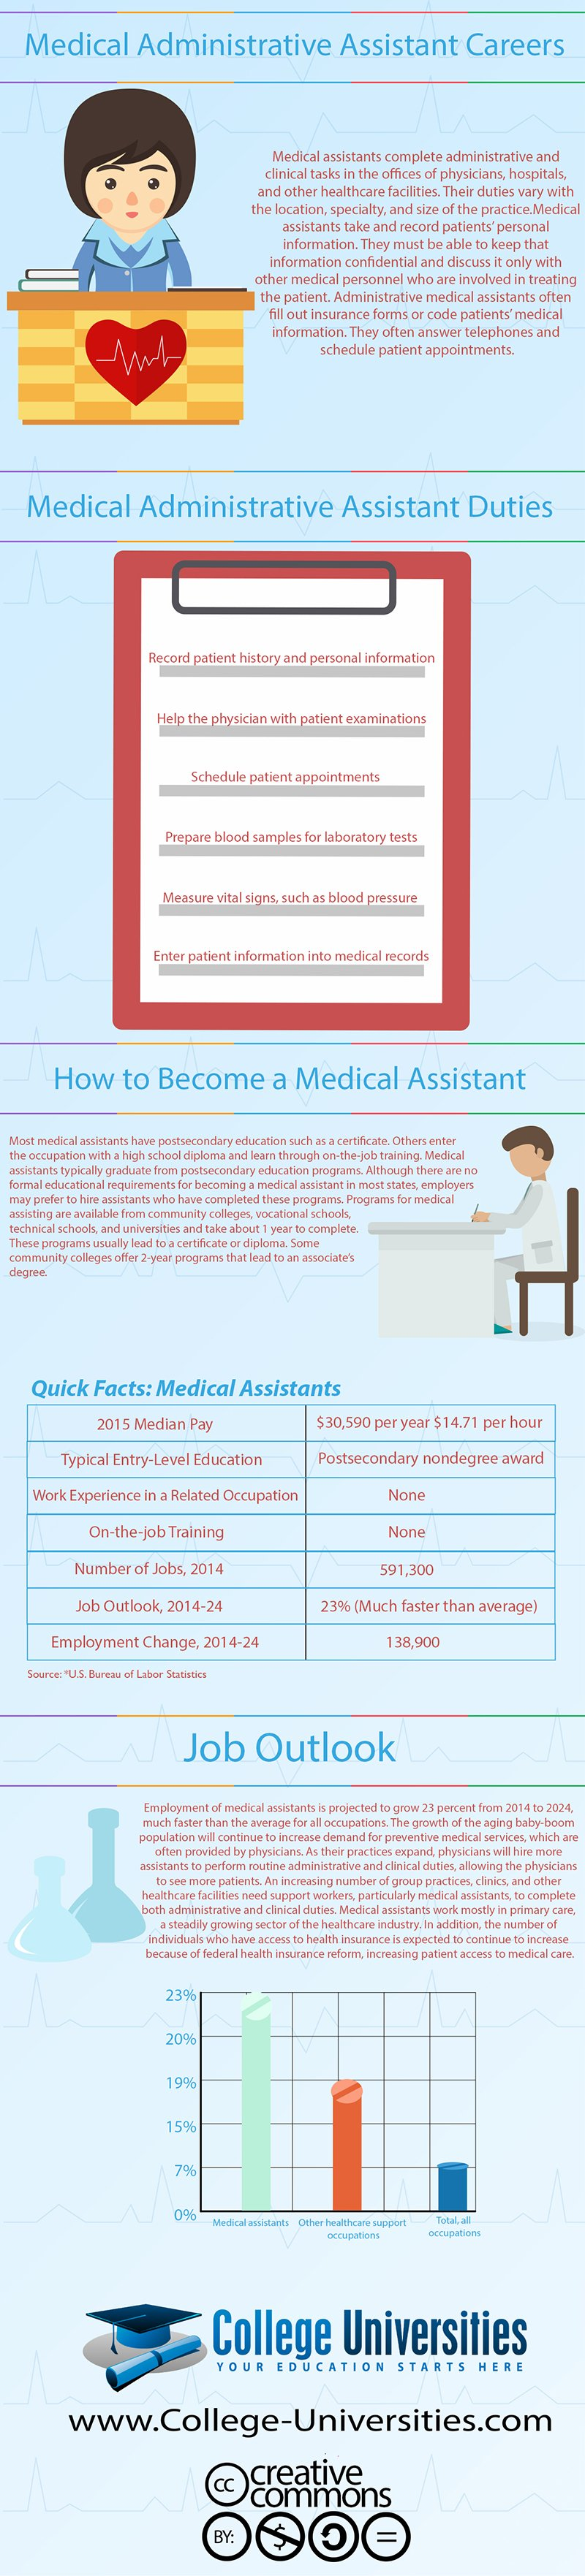 Medical Administrative Assistant Careers